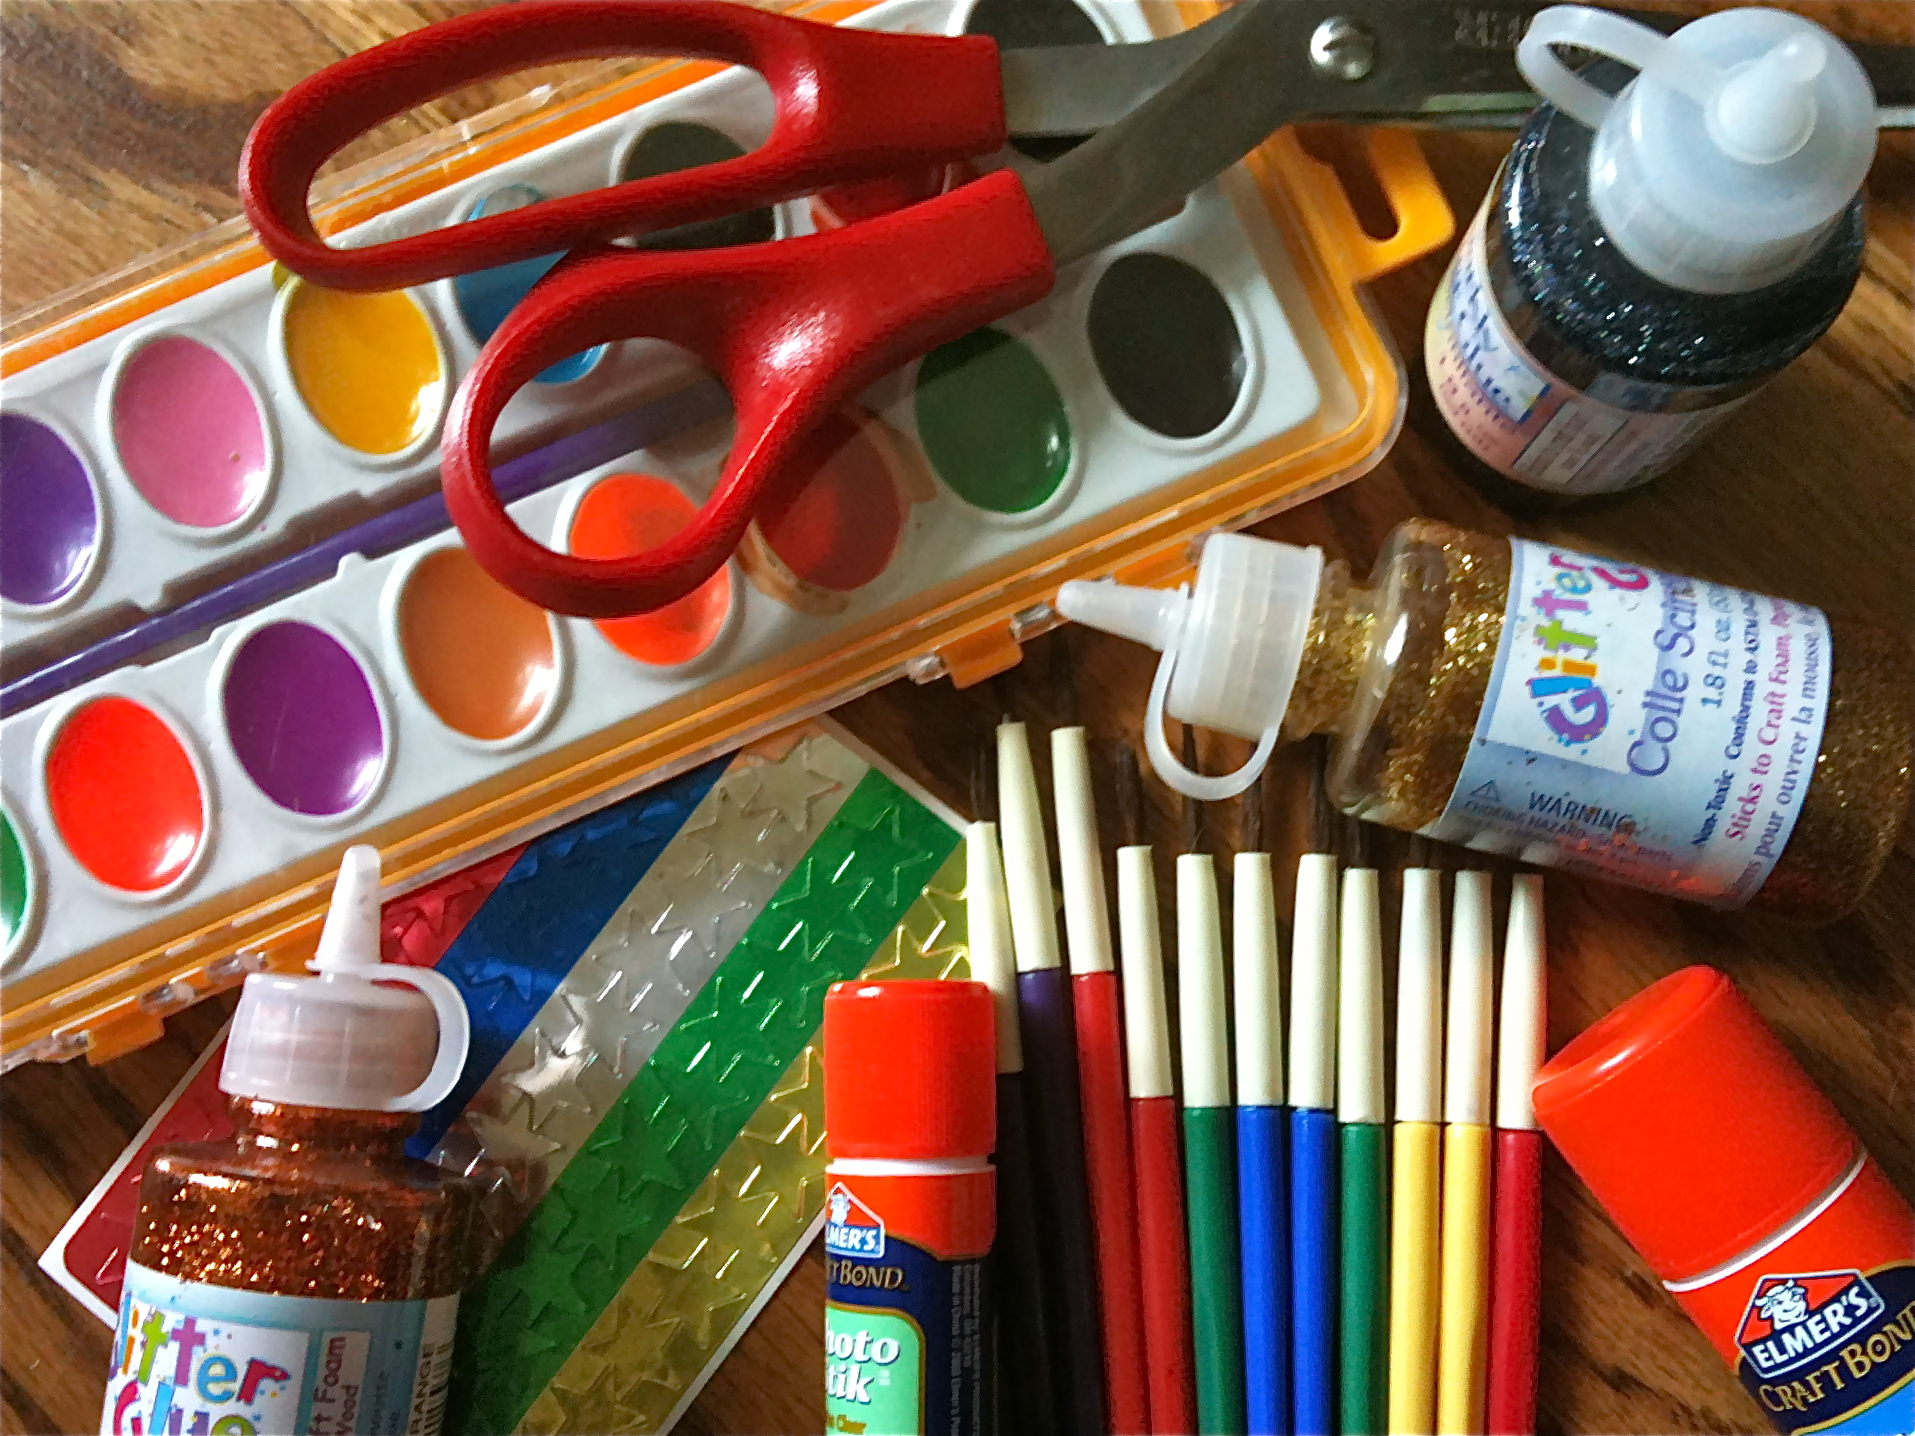 Arts And Crafts Store Top 10 Arts And Crafts Stores In Kl And Selangor